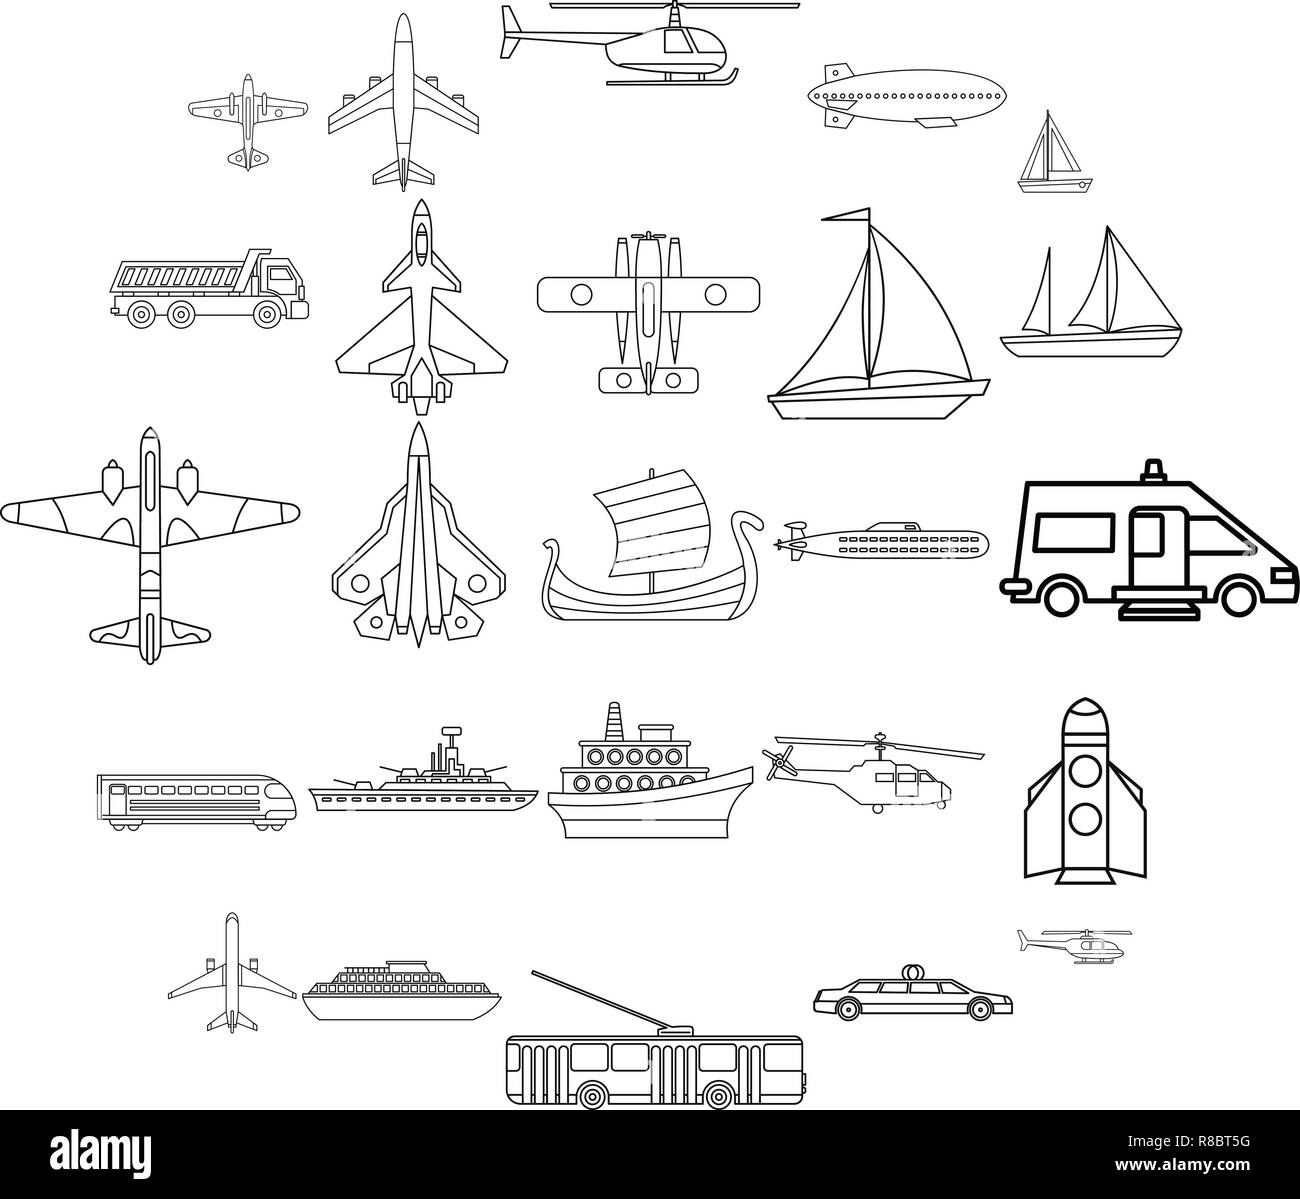 Civil transport icons set, outline style - Stock Image